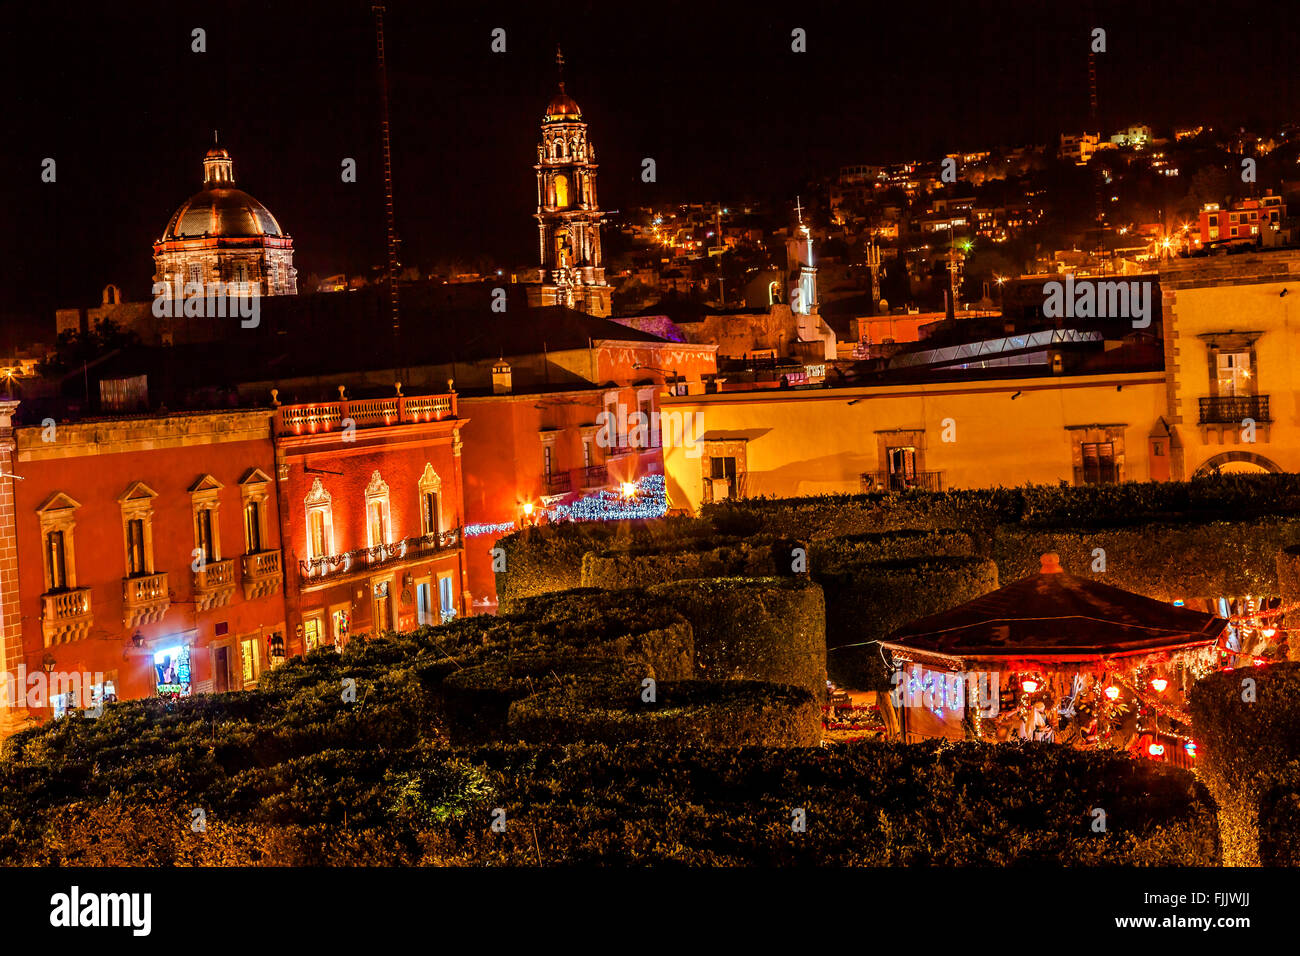 Jardin Town Square Night Stars Christmas Decorations Churches San Miguel de Allende Mexico. - Stock Image